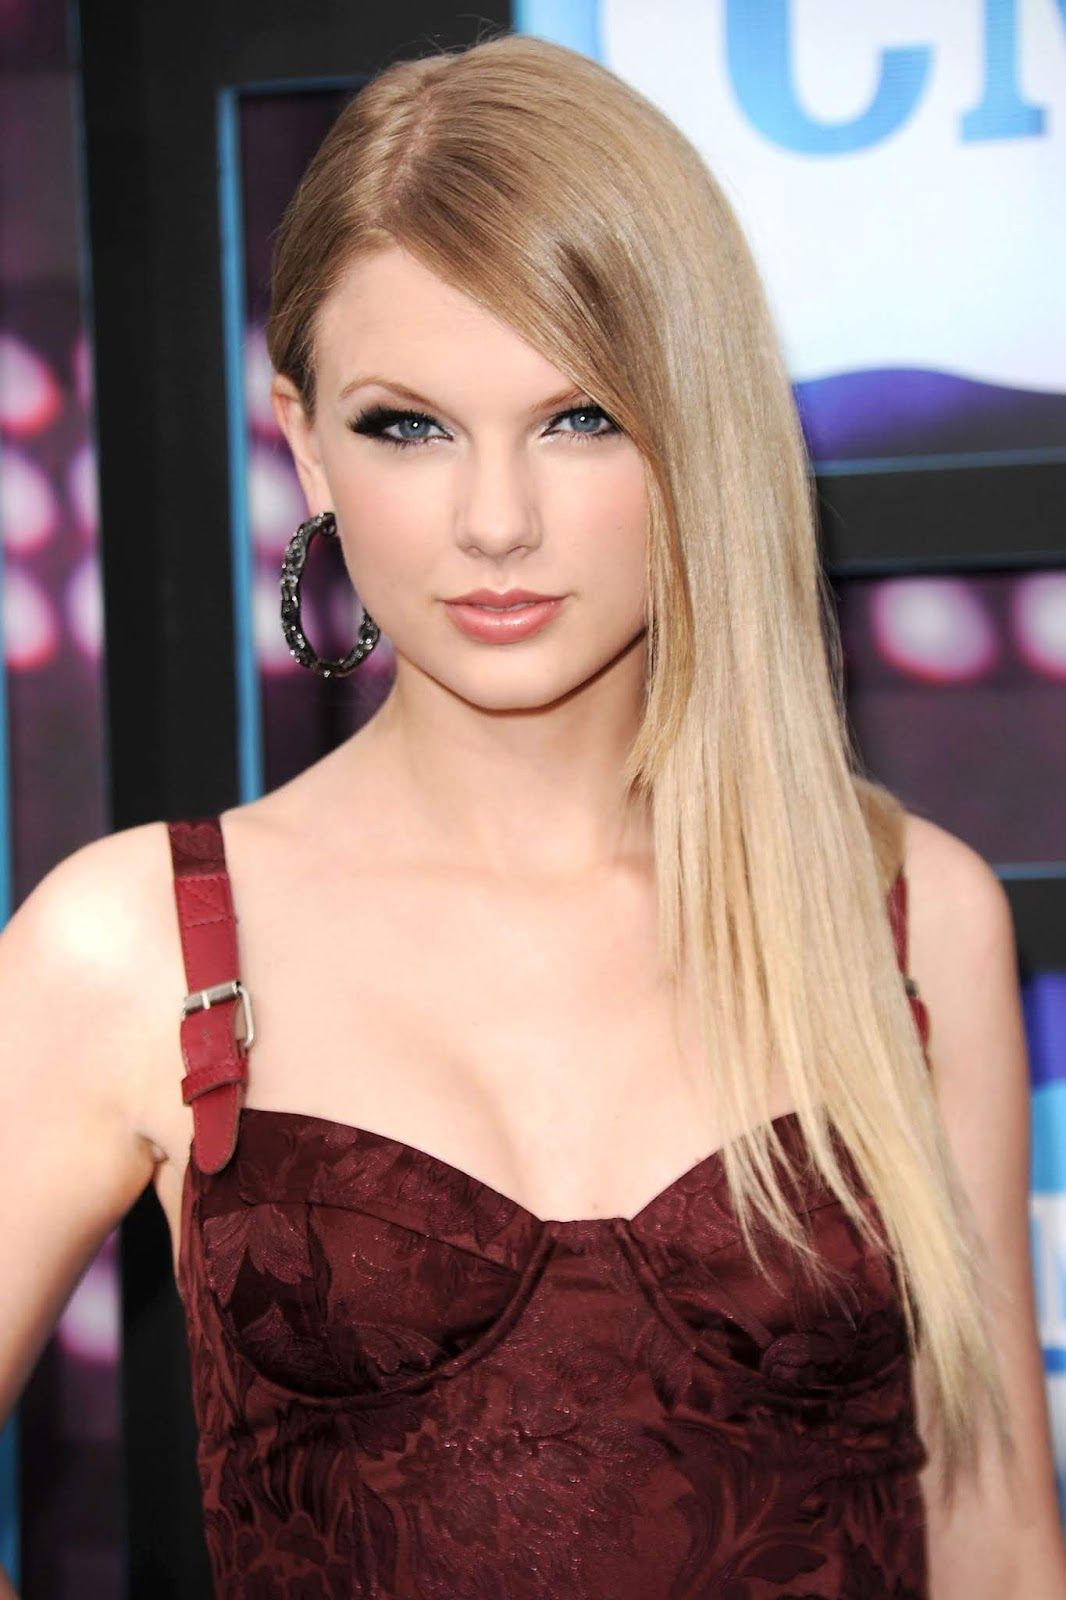 Taylor Swift Today News Wiki Affairs Updates Biodata Phone Number Family Go Profile All Celeb Profiles Tollywood Bollywood Kollywood Hollywood Go Profiles